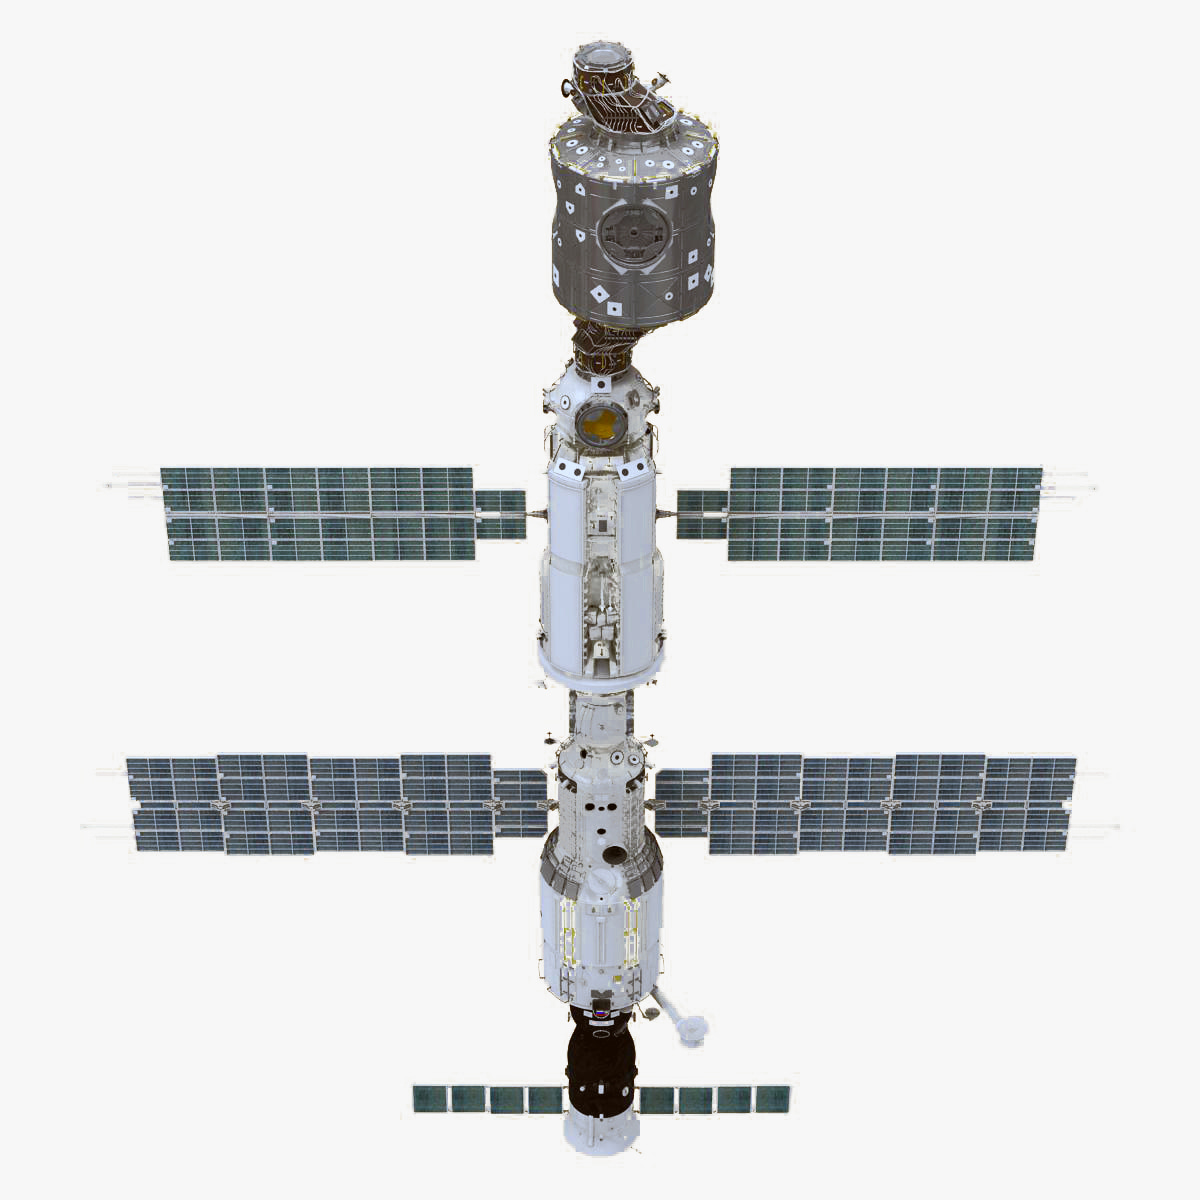 International_Space_Station_ISS_2000_000.jpg